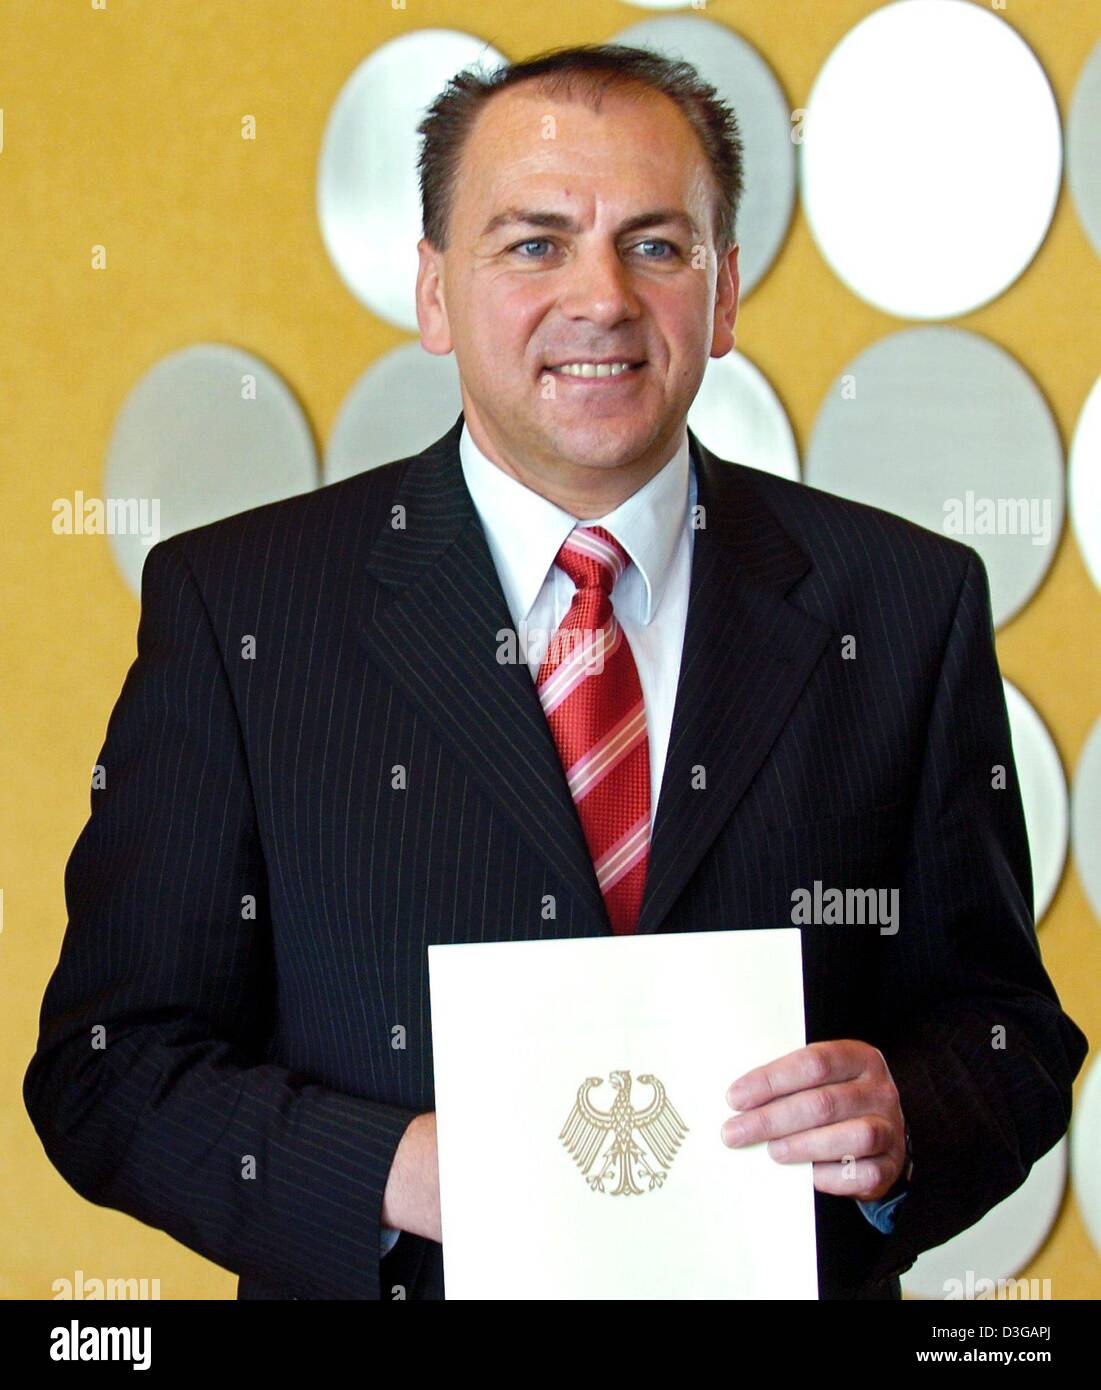 (dpa) The new German Central Bank president Axel Weber holds his letter of appointment in his hands in Frankfurt - Stock Image